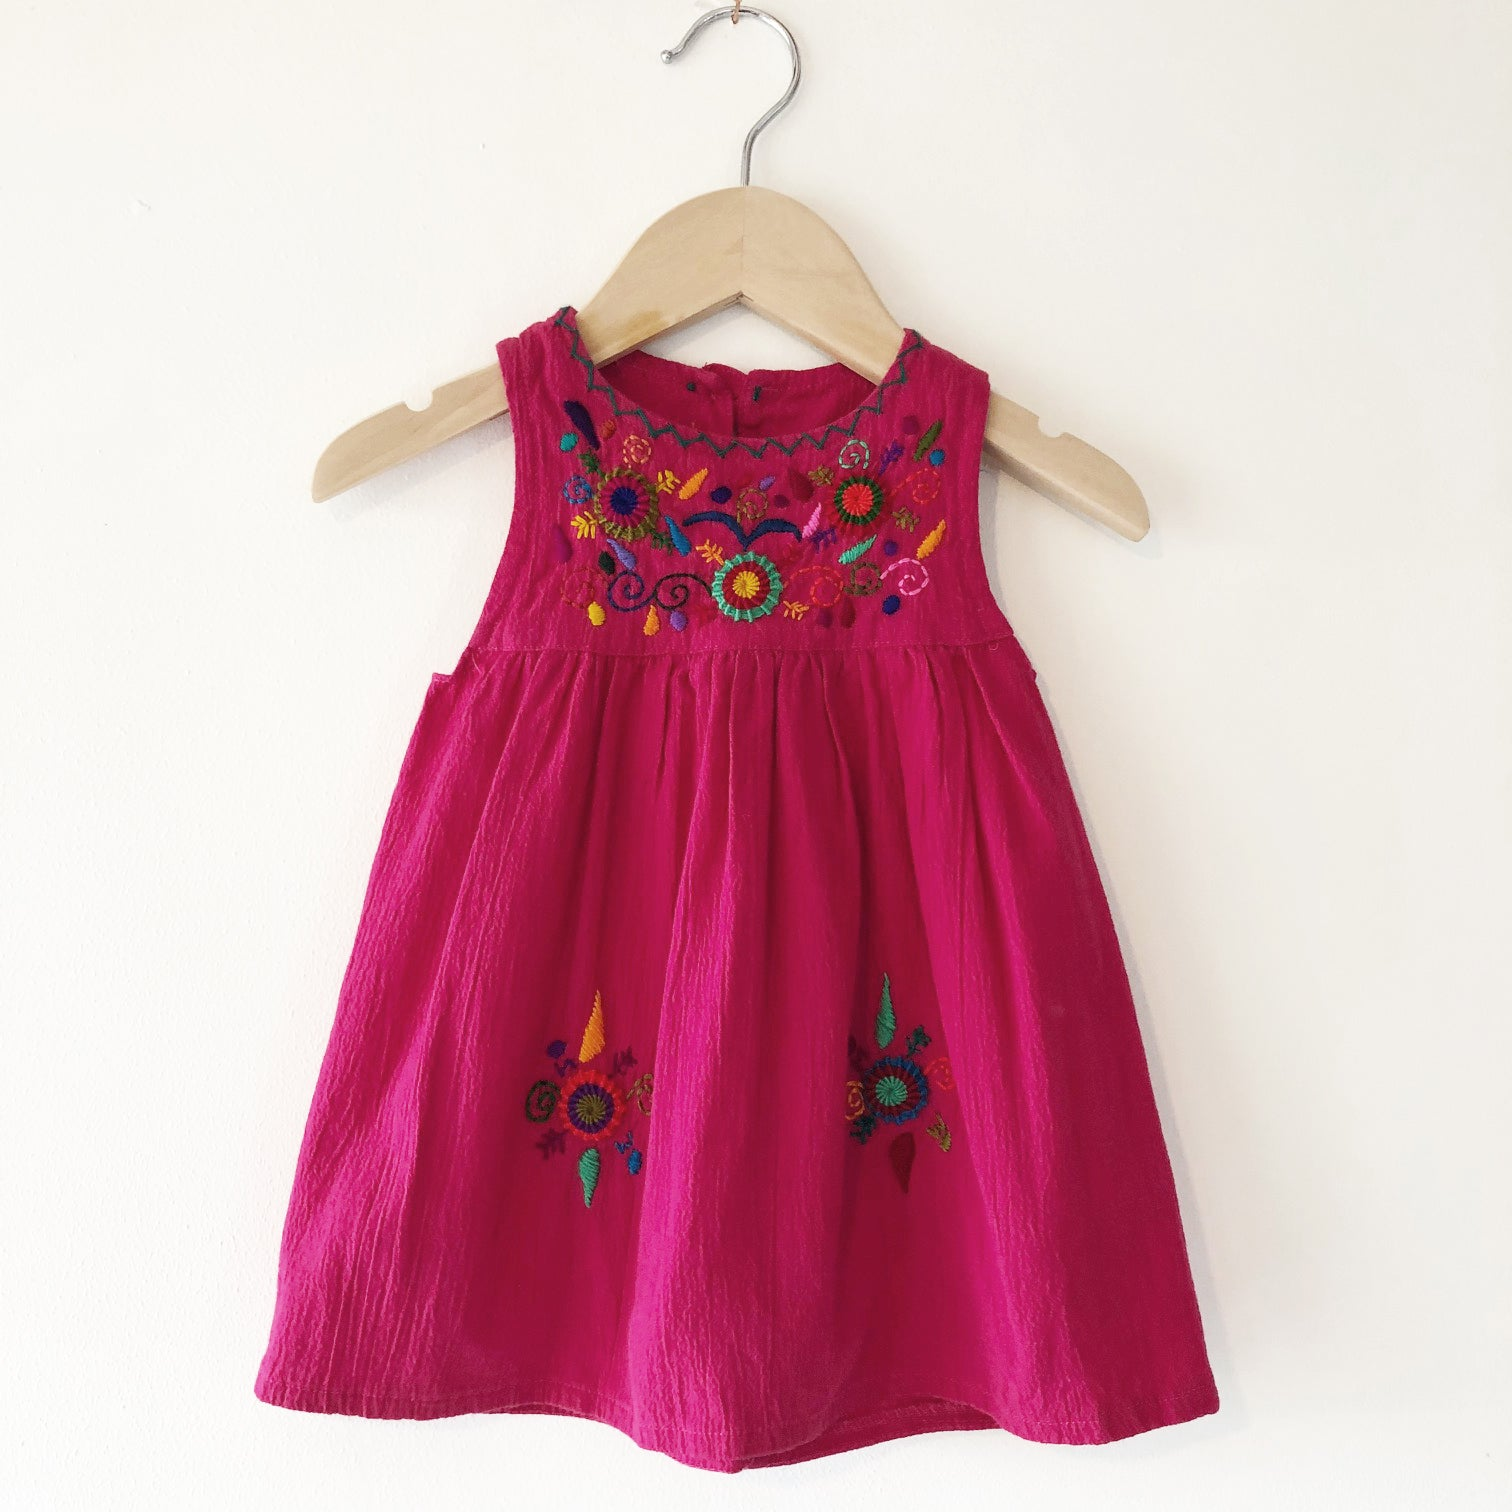 Oaxacan Embroidery Dress size 12 months